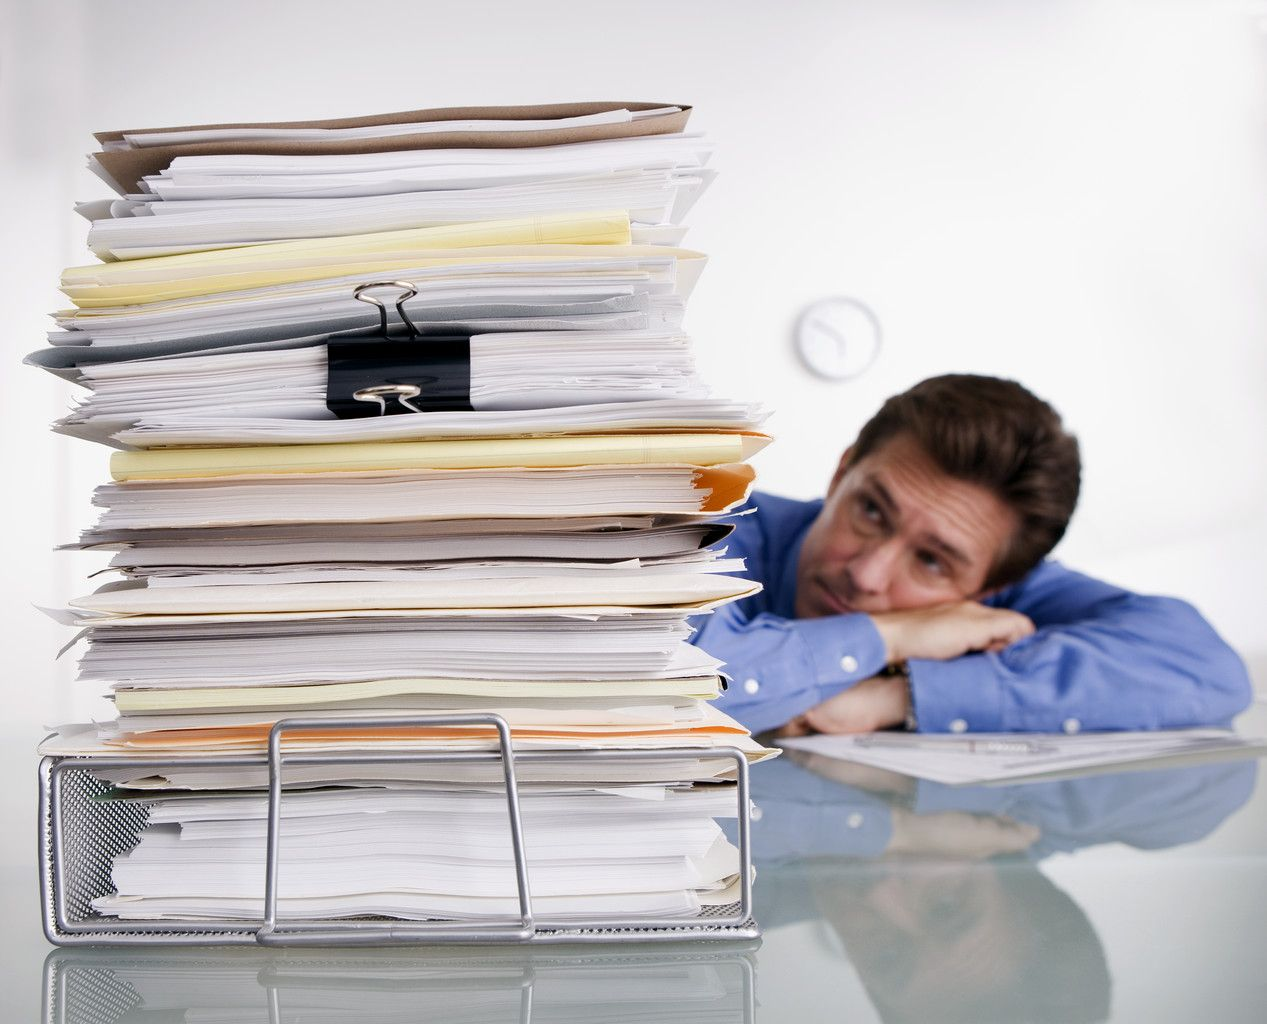 Paperwork got you down?  A professional organizer can help!